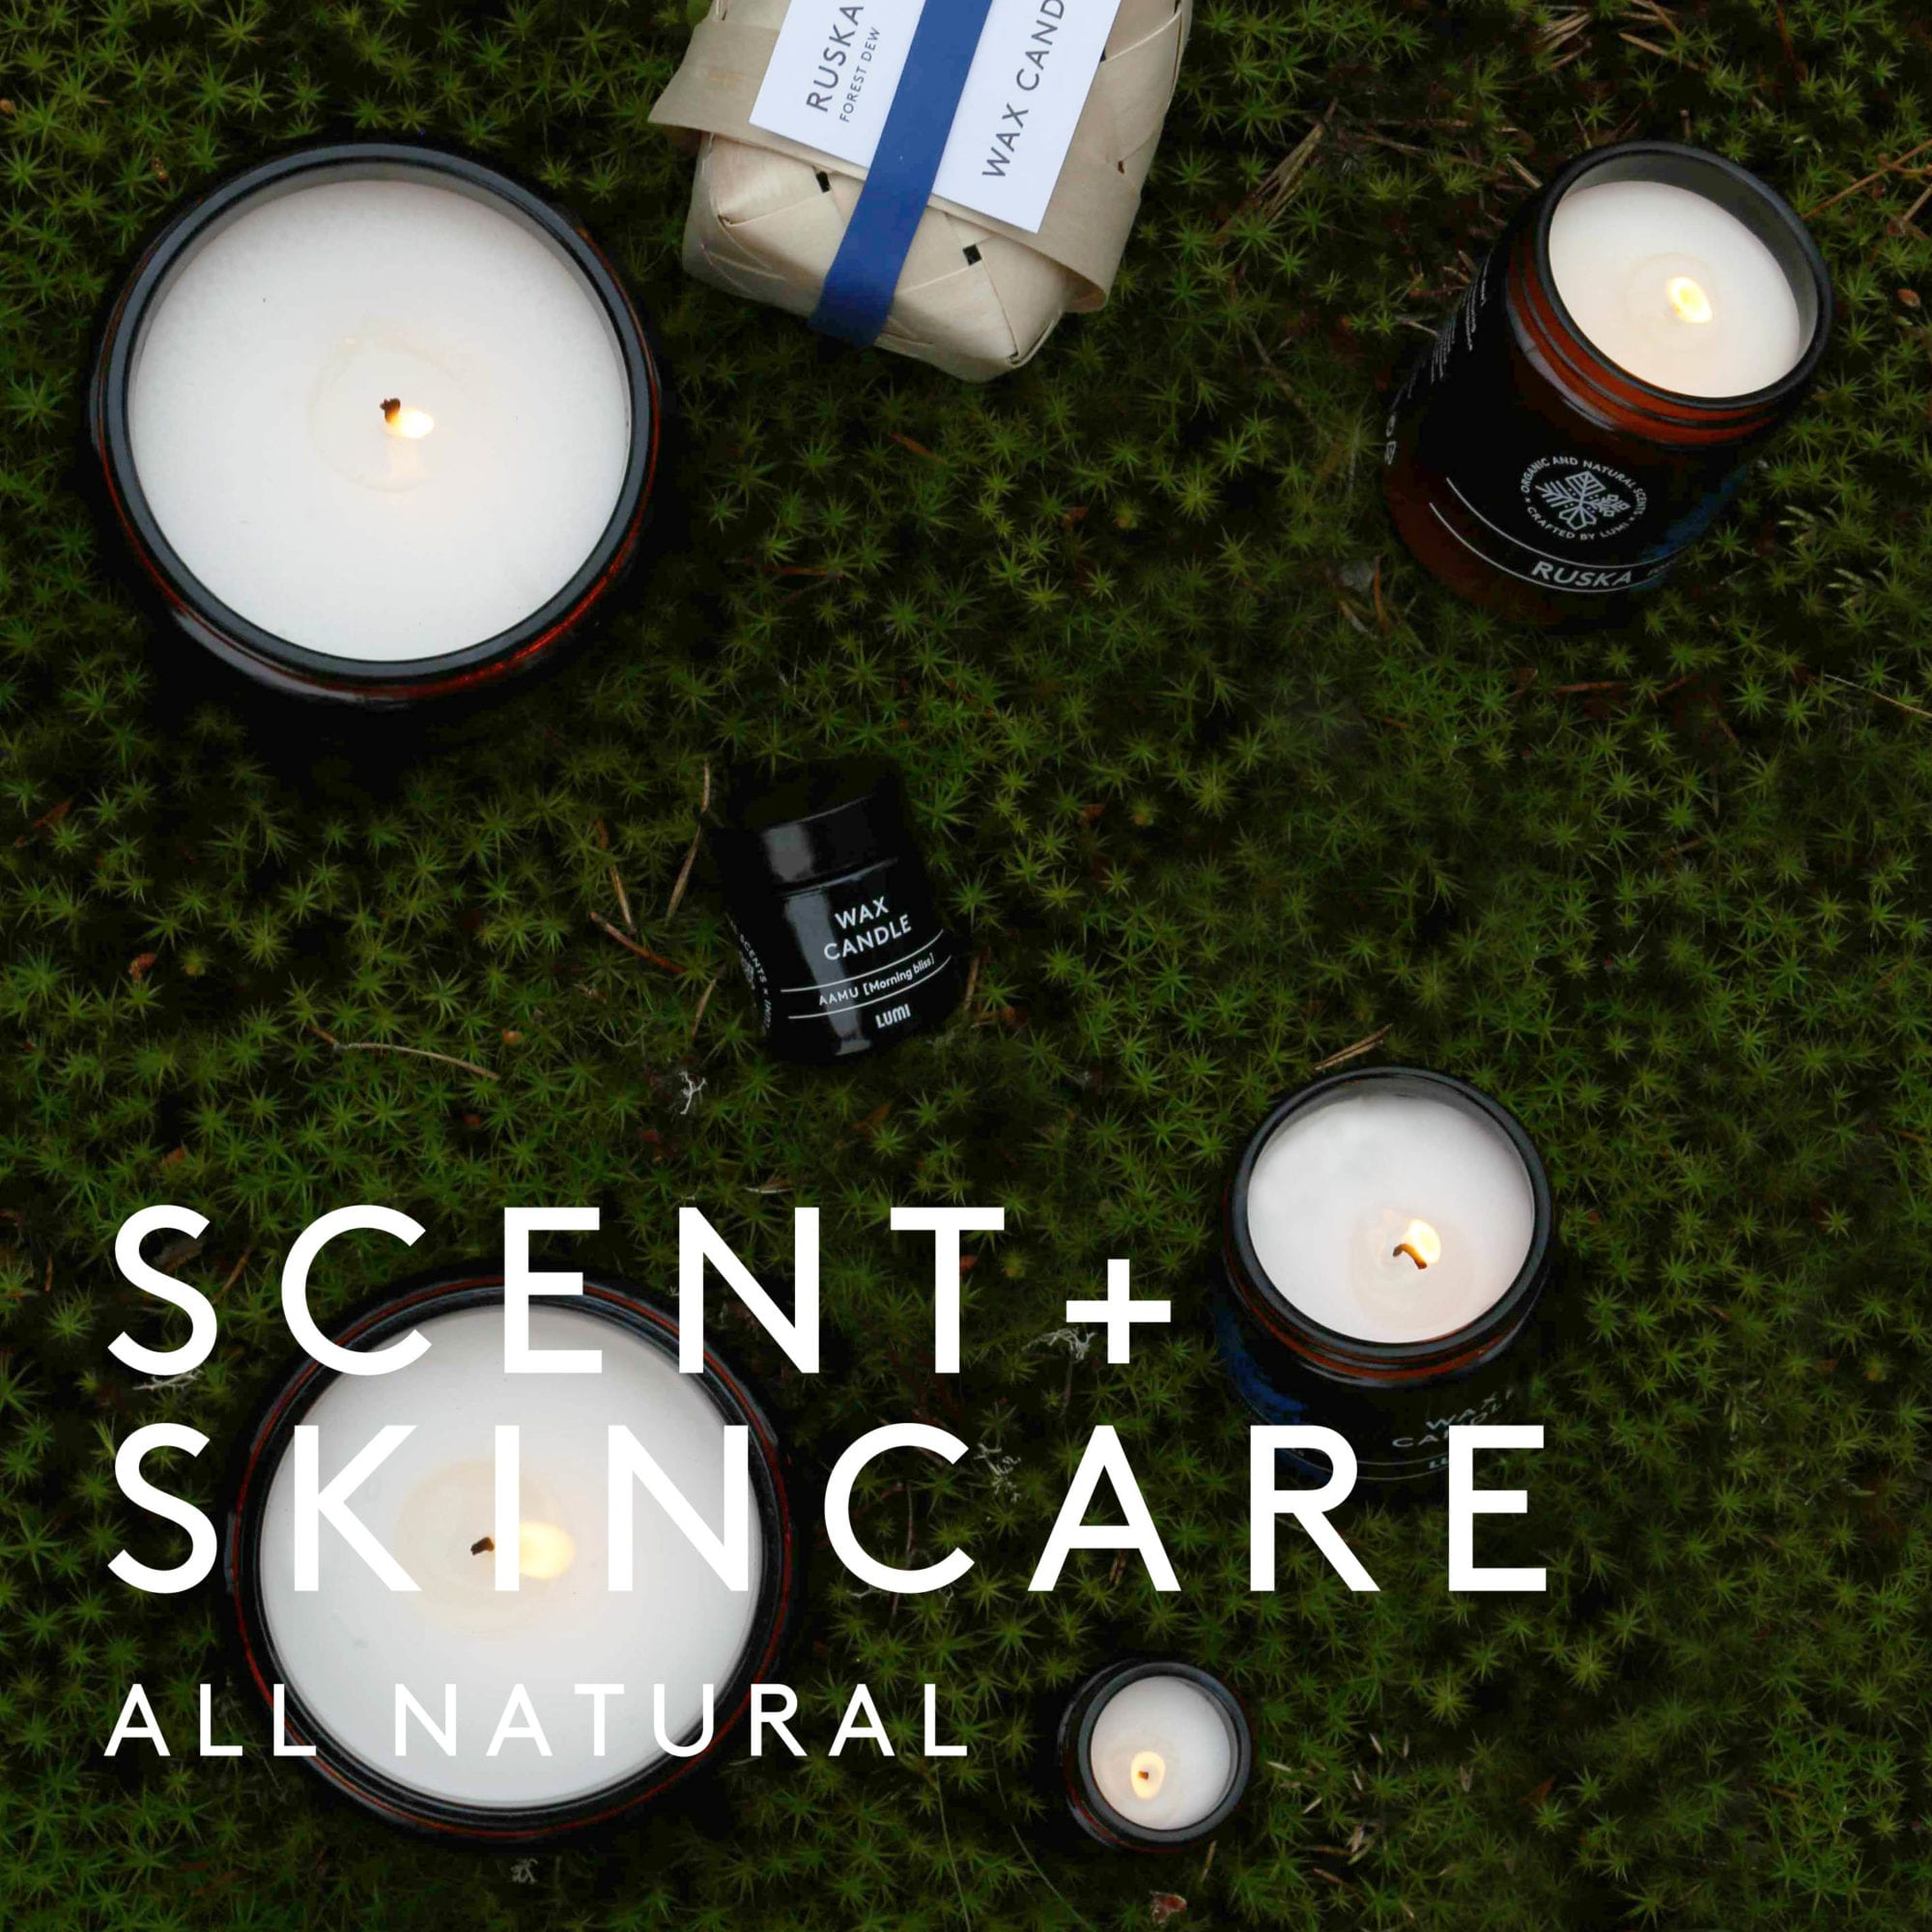 LUMI Scent + Skincare is all about natural ingredients.